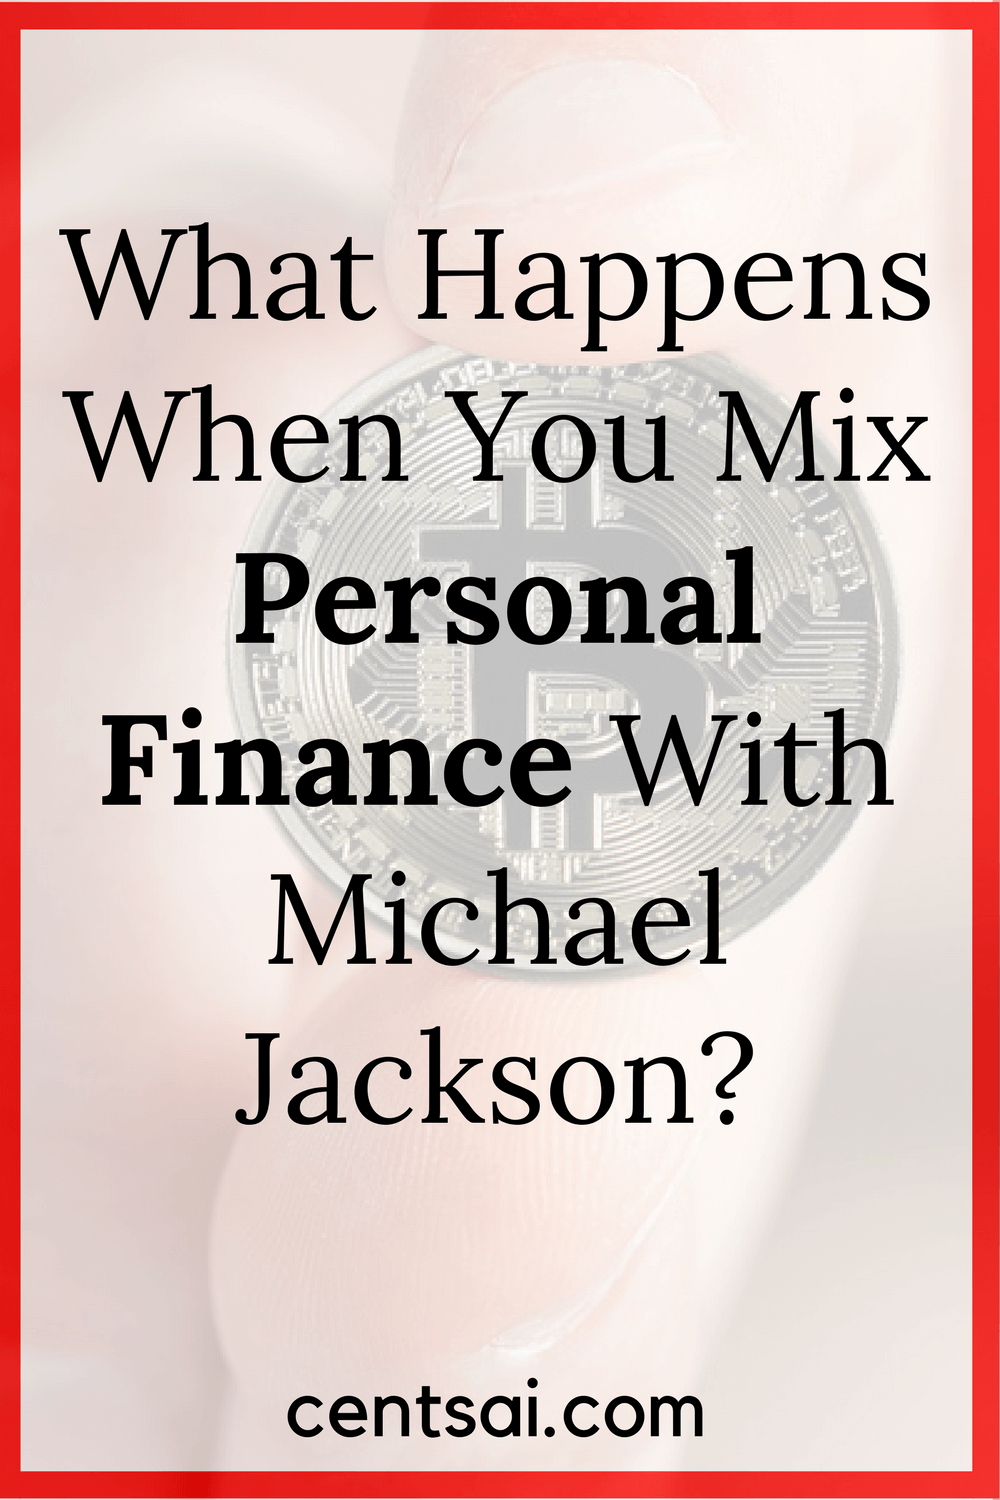 What Happens When You Mix Personal Finance With Michael Jackson?